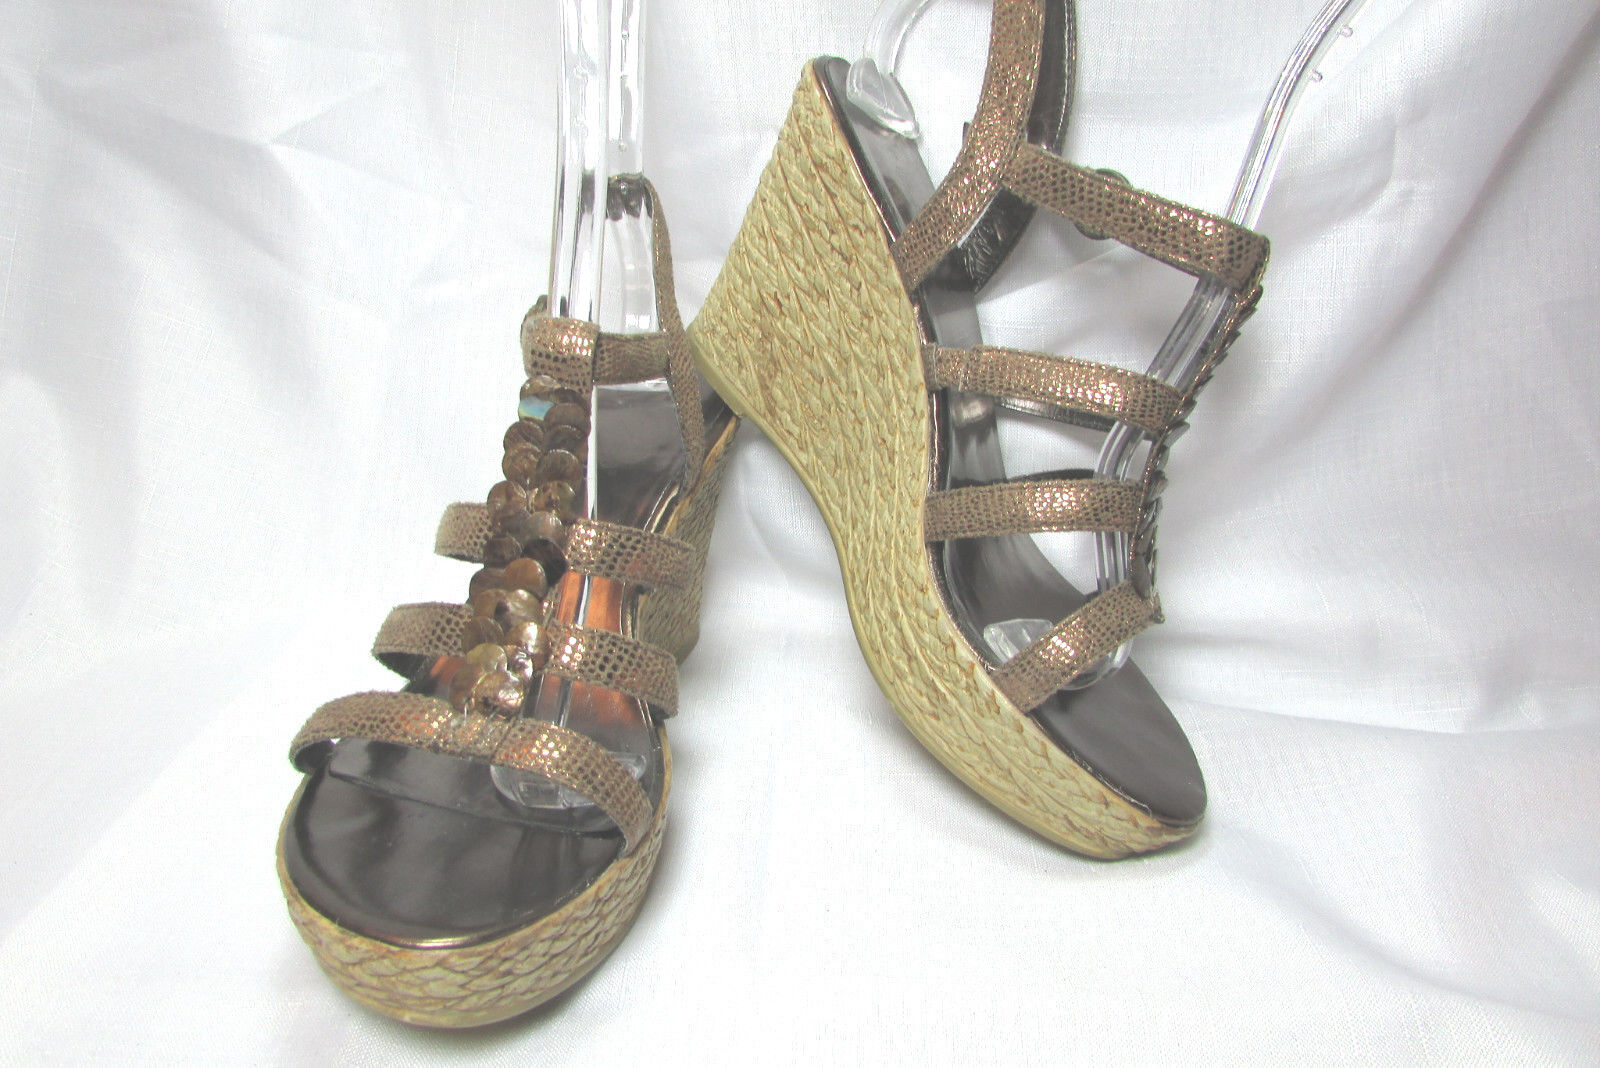 Pesaro Brown Bronze Croc Size Strappy Wedge Espadrilles High Heel Sandals Size Croc US 9 M 2a1ed8